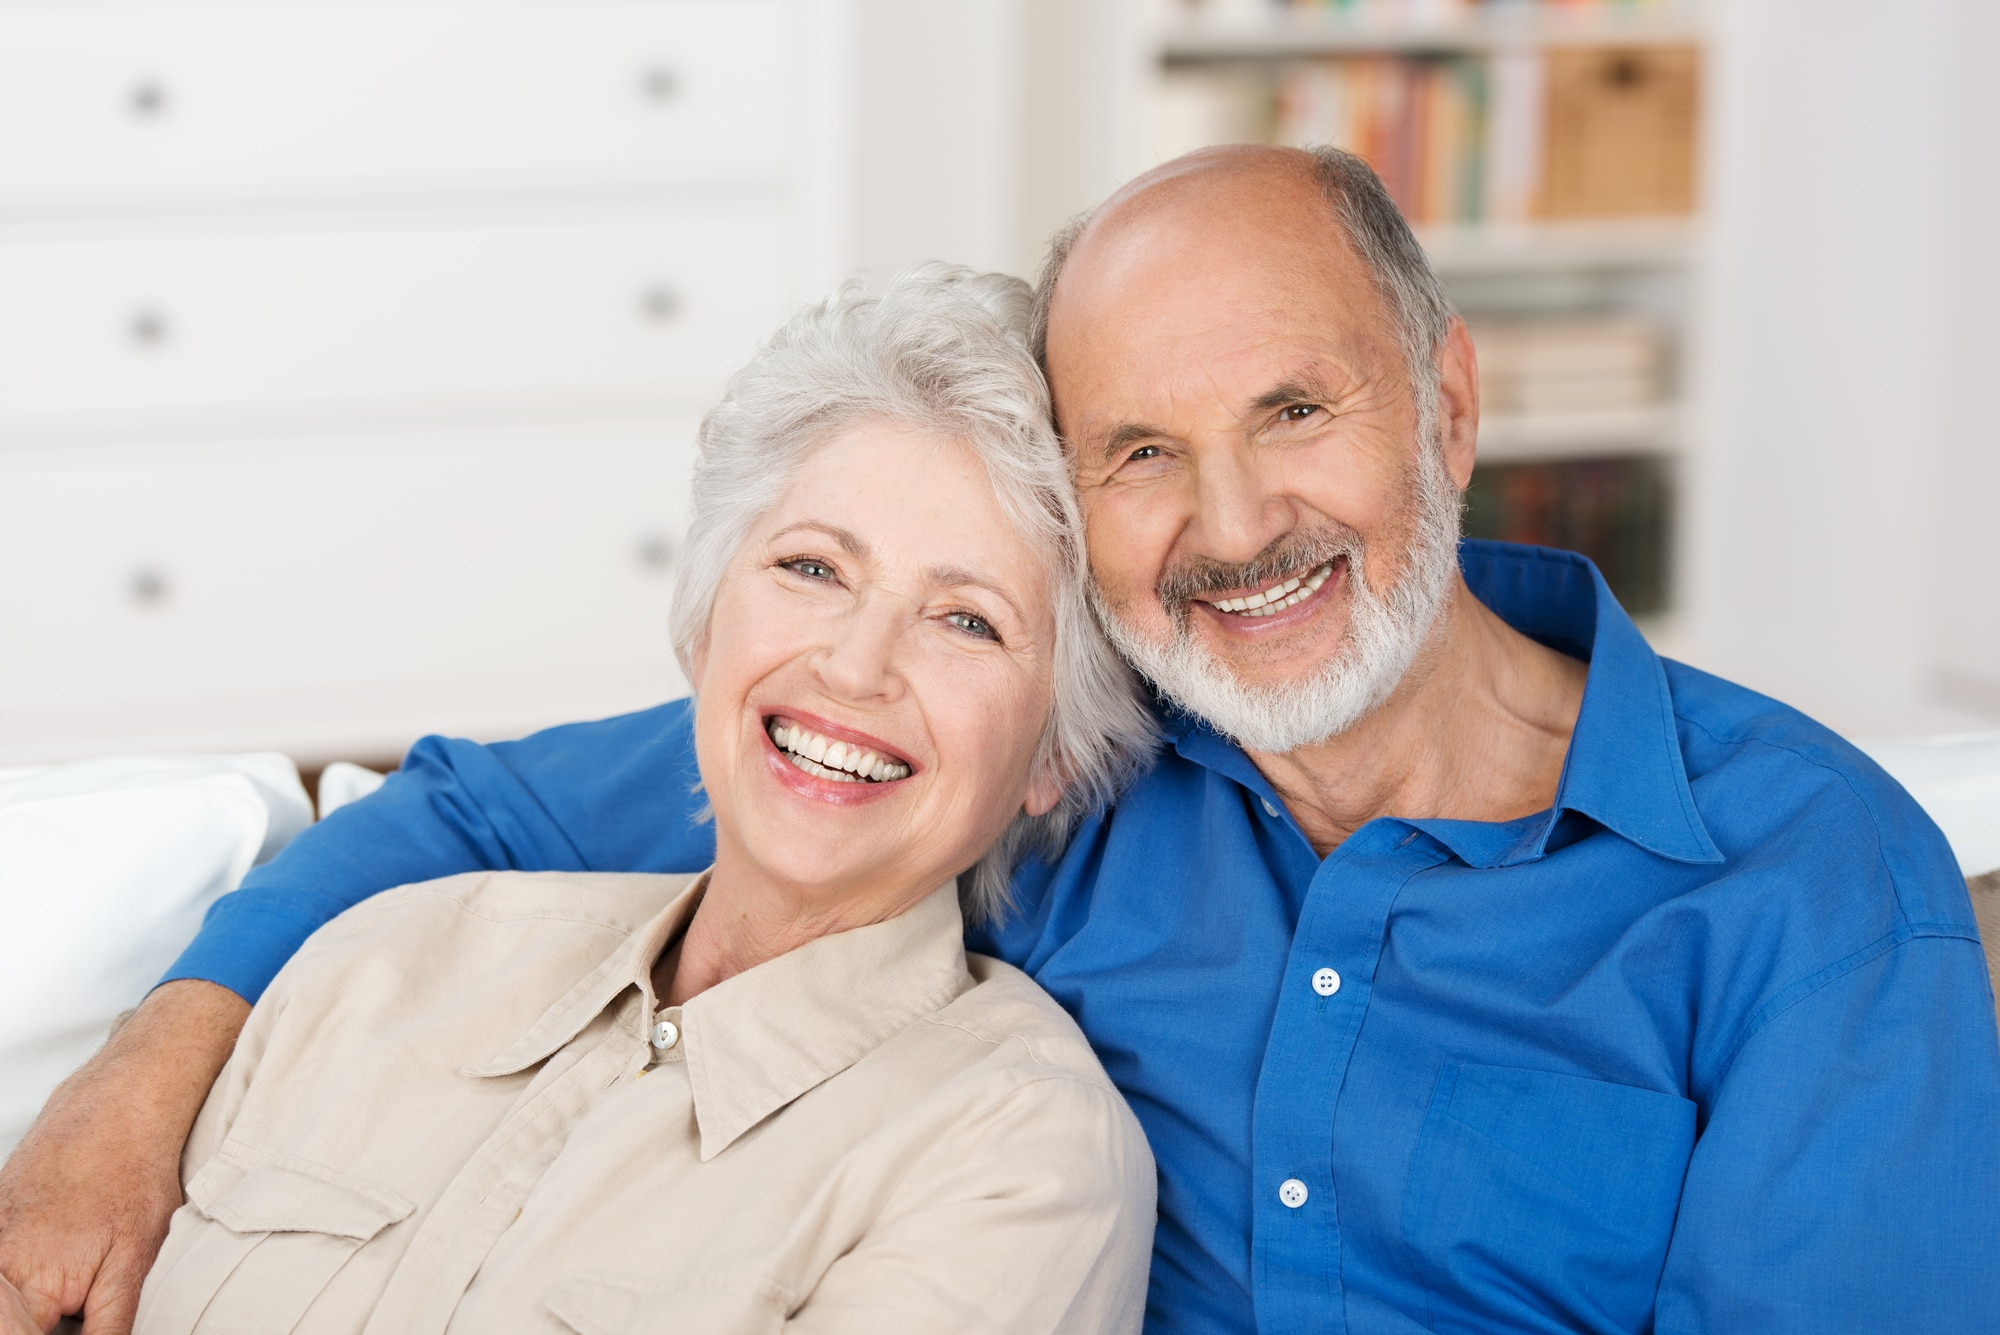 Smiling Happy Seniors Mobile Home Image - Cherrywood Dental Care - All ages Dentistry Savage, MN